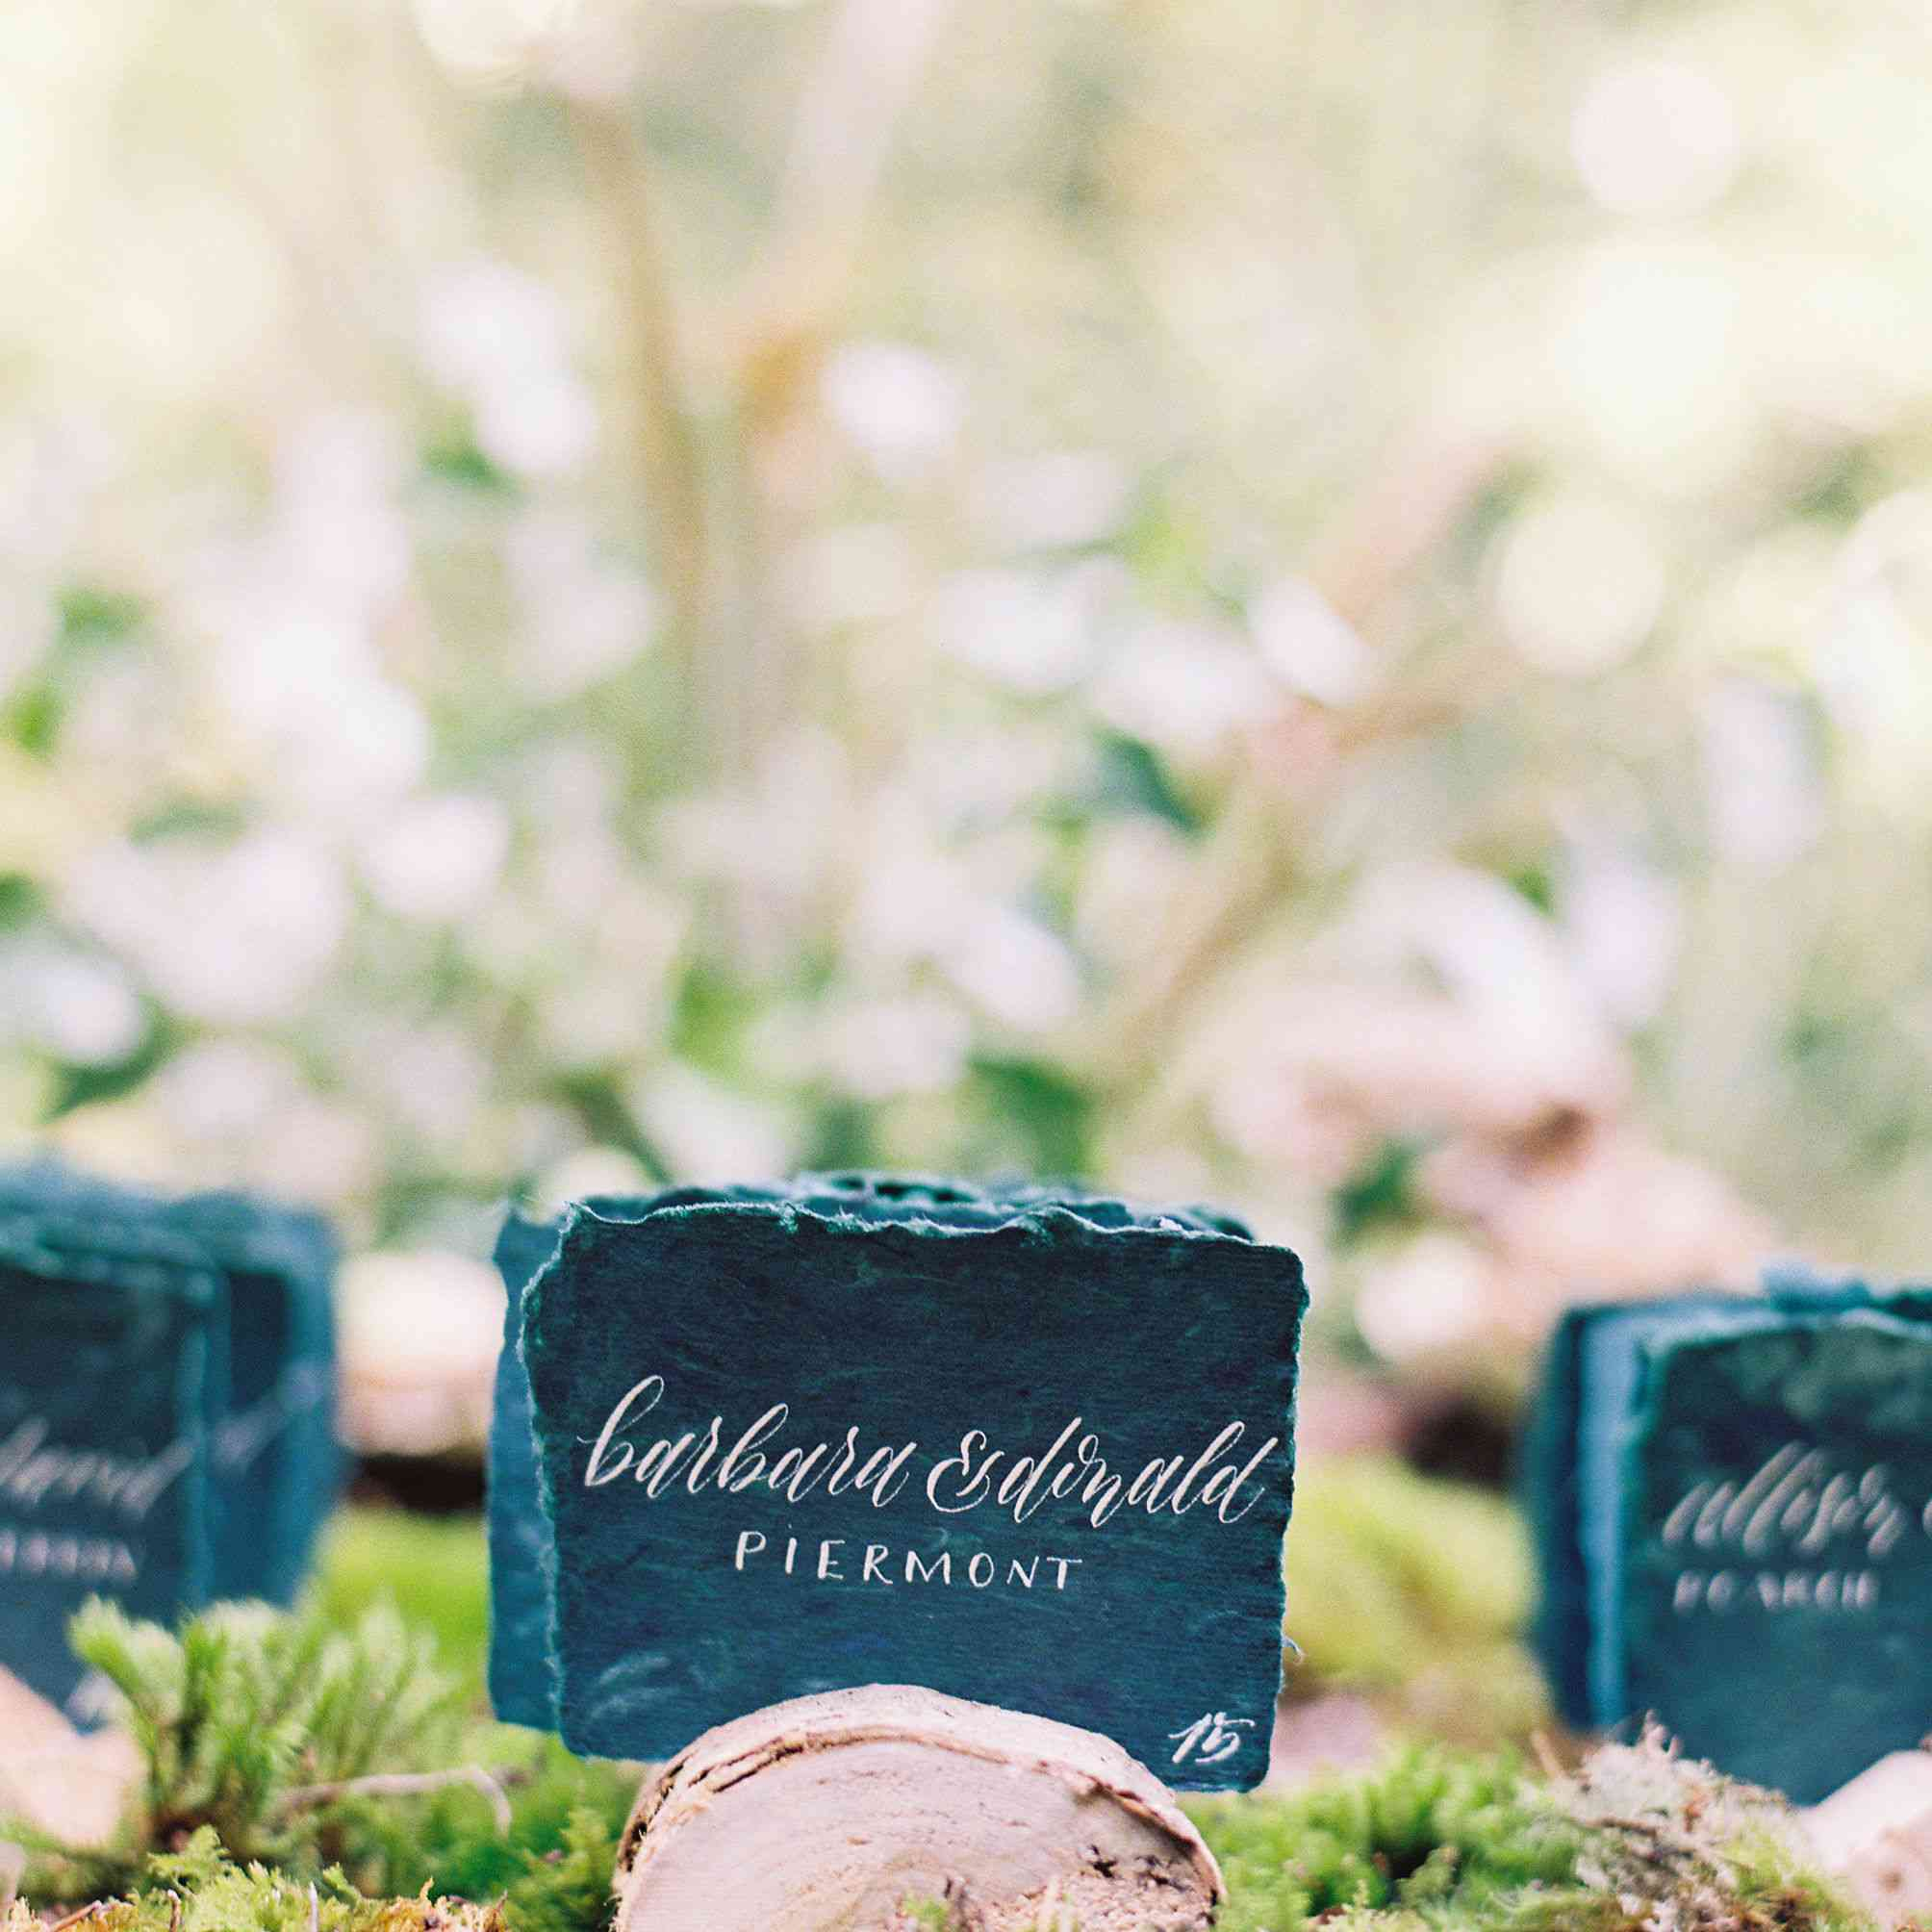 Handmade paper escort cards placed in moss